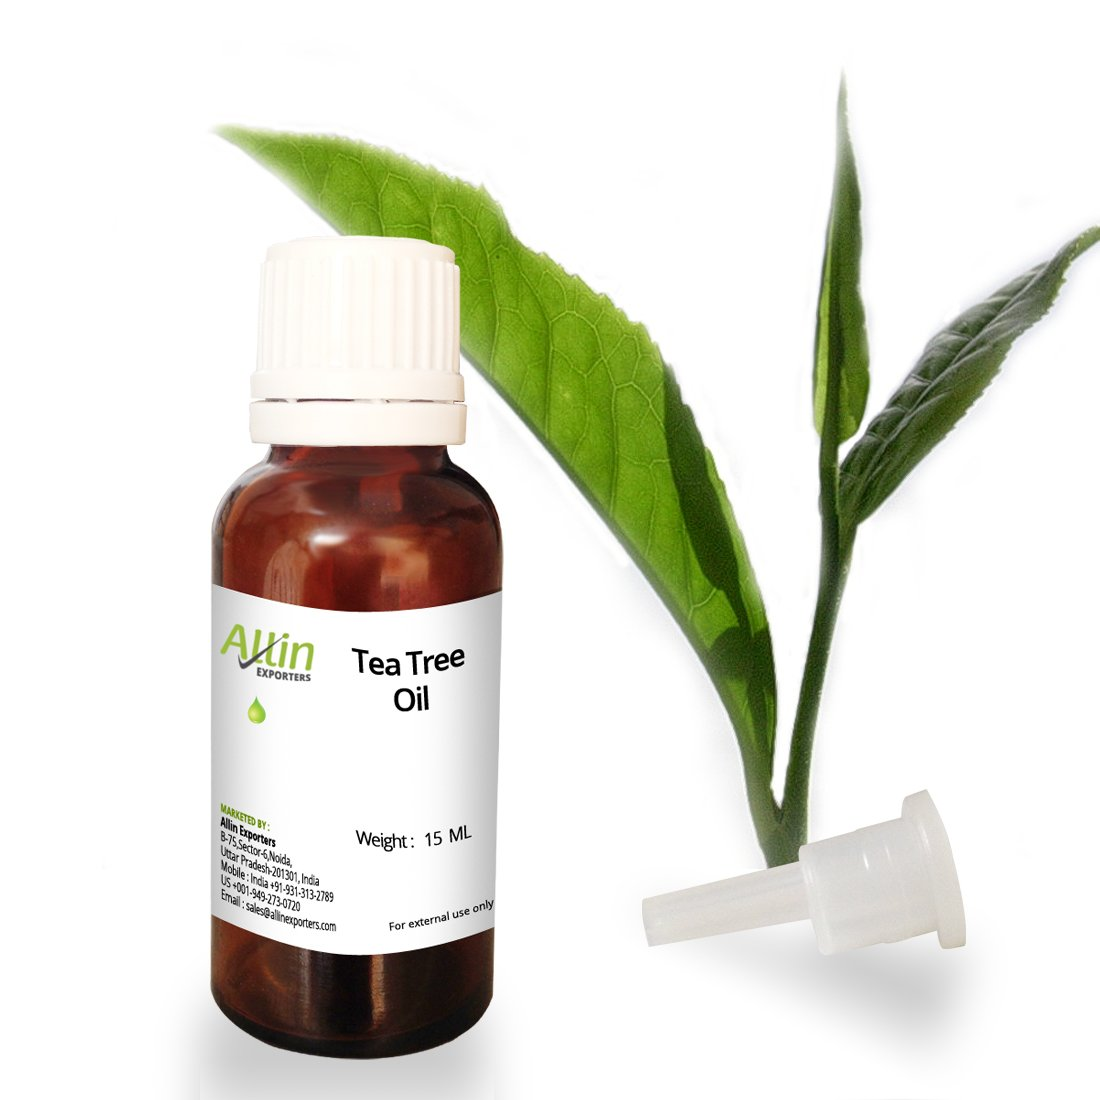 Care exporter health herbal product - Allin Exporters Tea Tree Essential Oil 30 Ml 100 Pure A Natural Way For Skin Hair And Acne Care Amazon In Health Personal Care